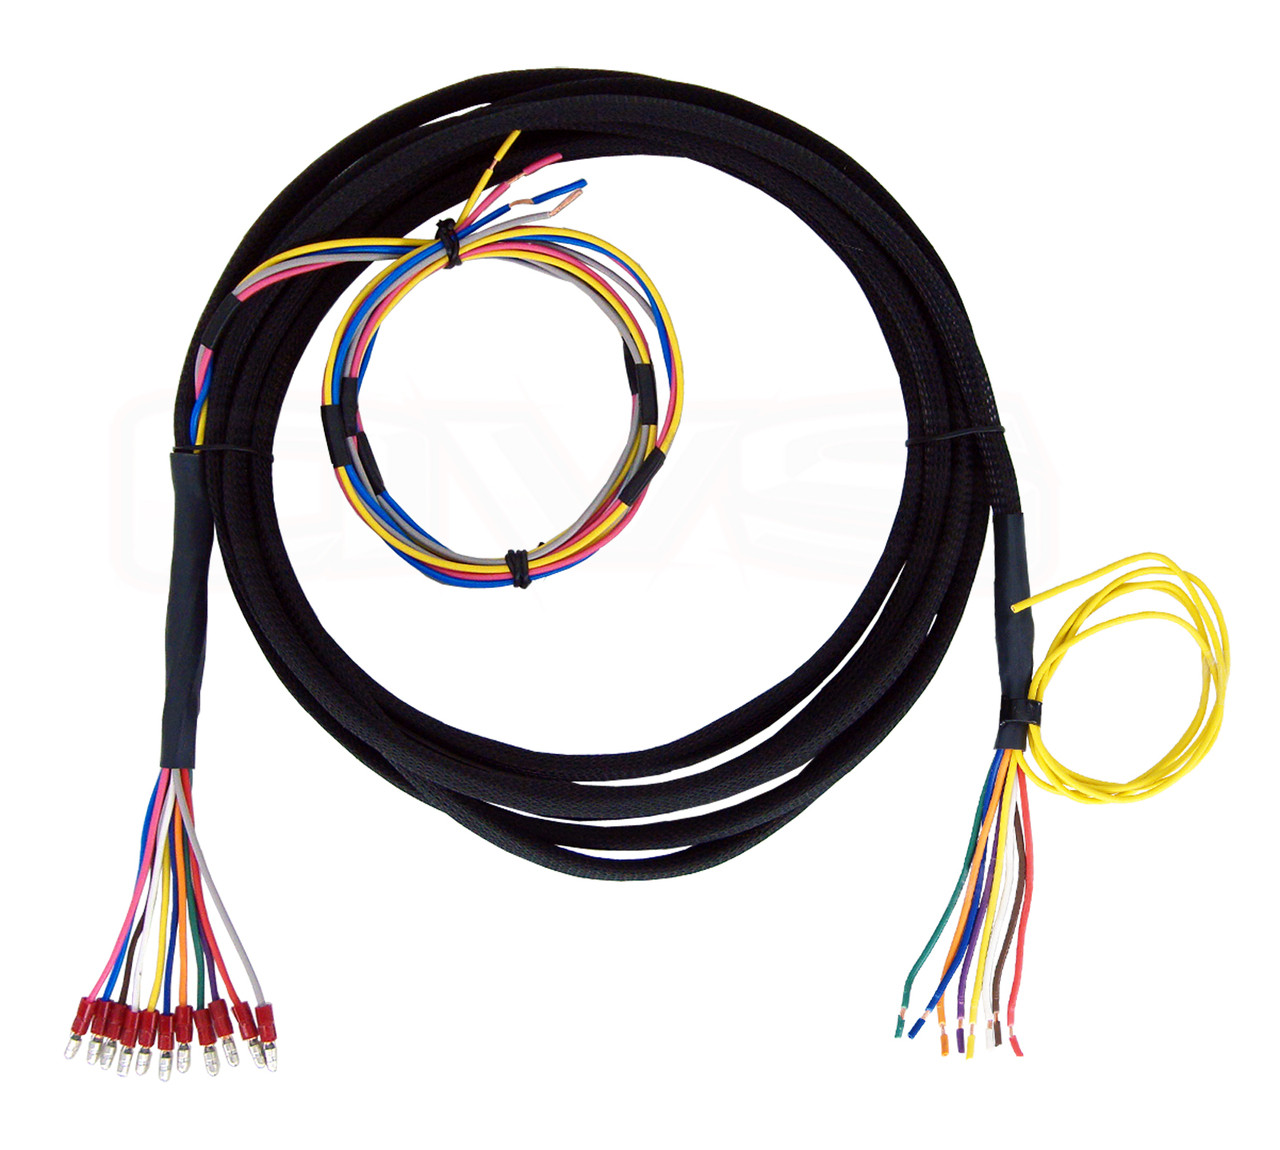 7 Wire Wiring Harness Best Electrical Circuit Diagram Universal Avs Valve 10 15 20 To Switch Rh Avsontheweb Com 4 Plug